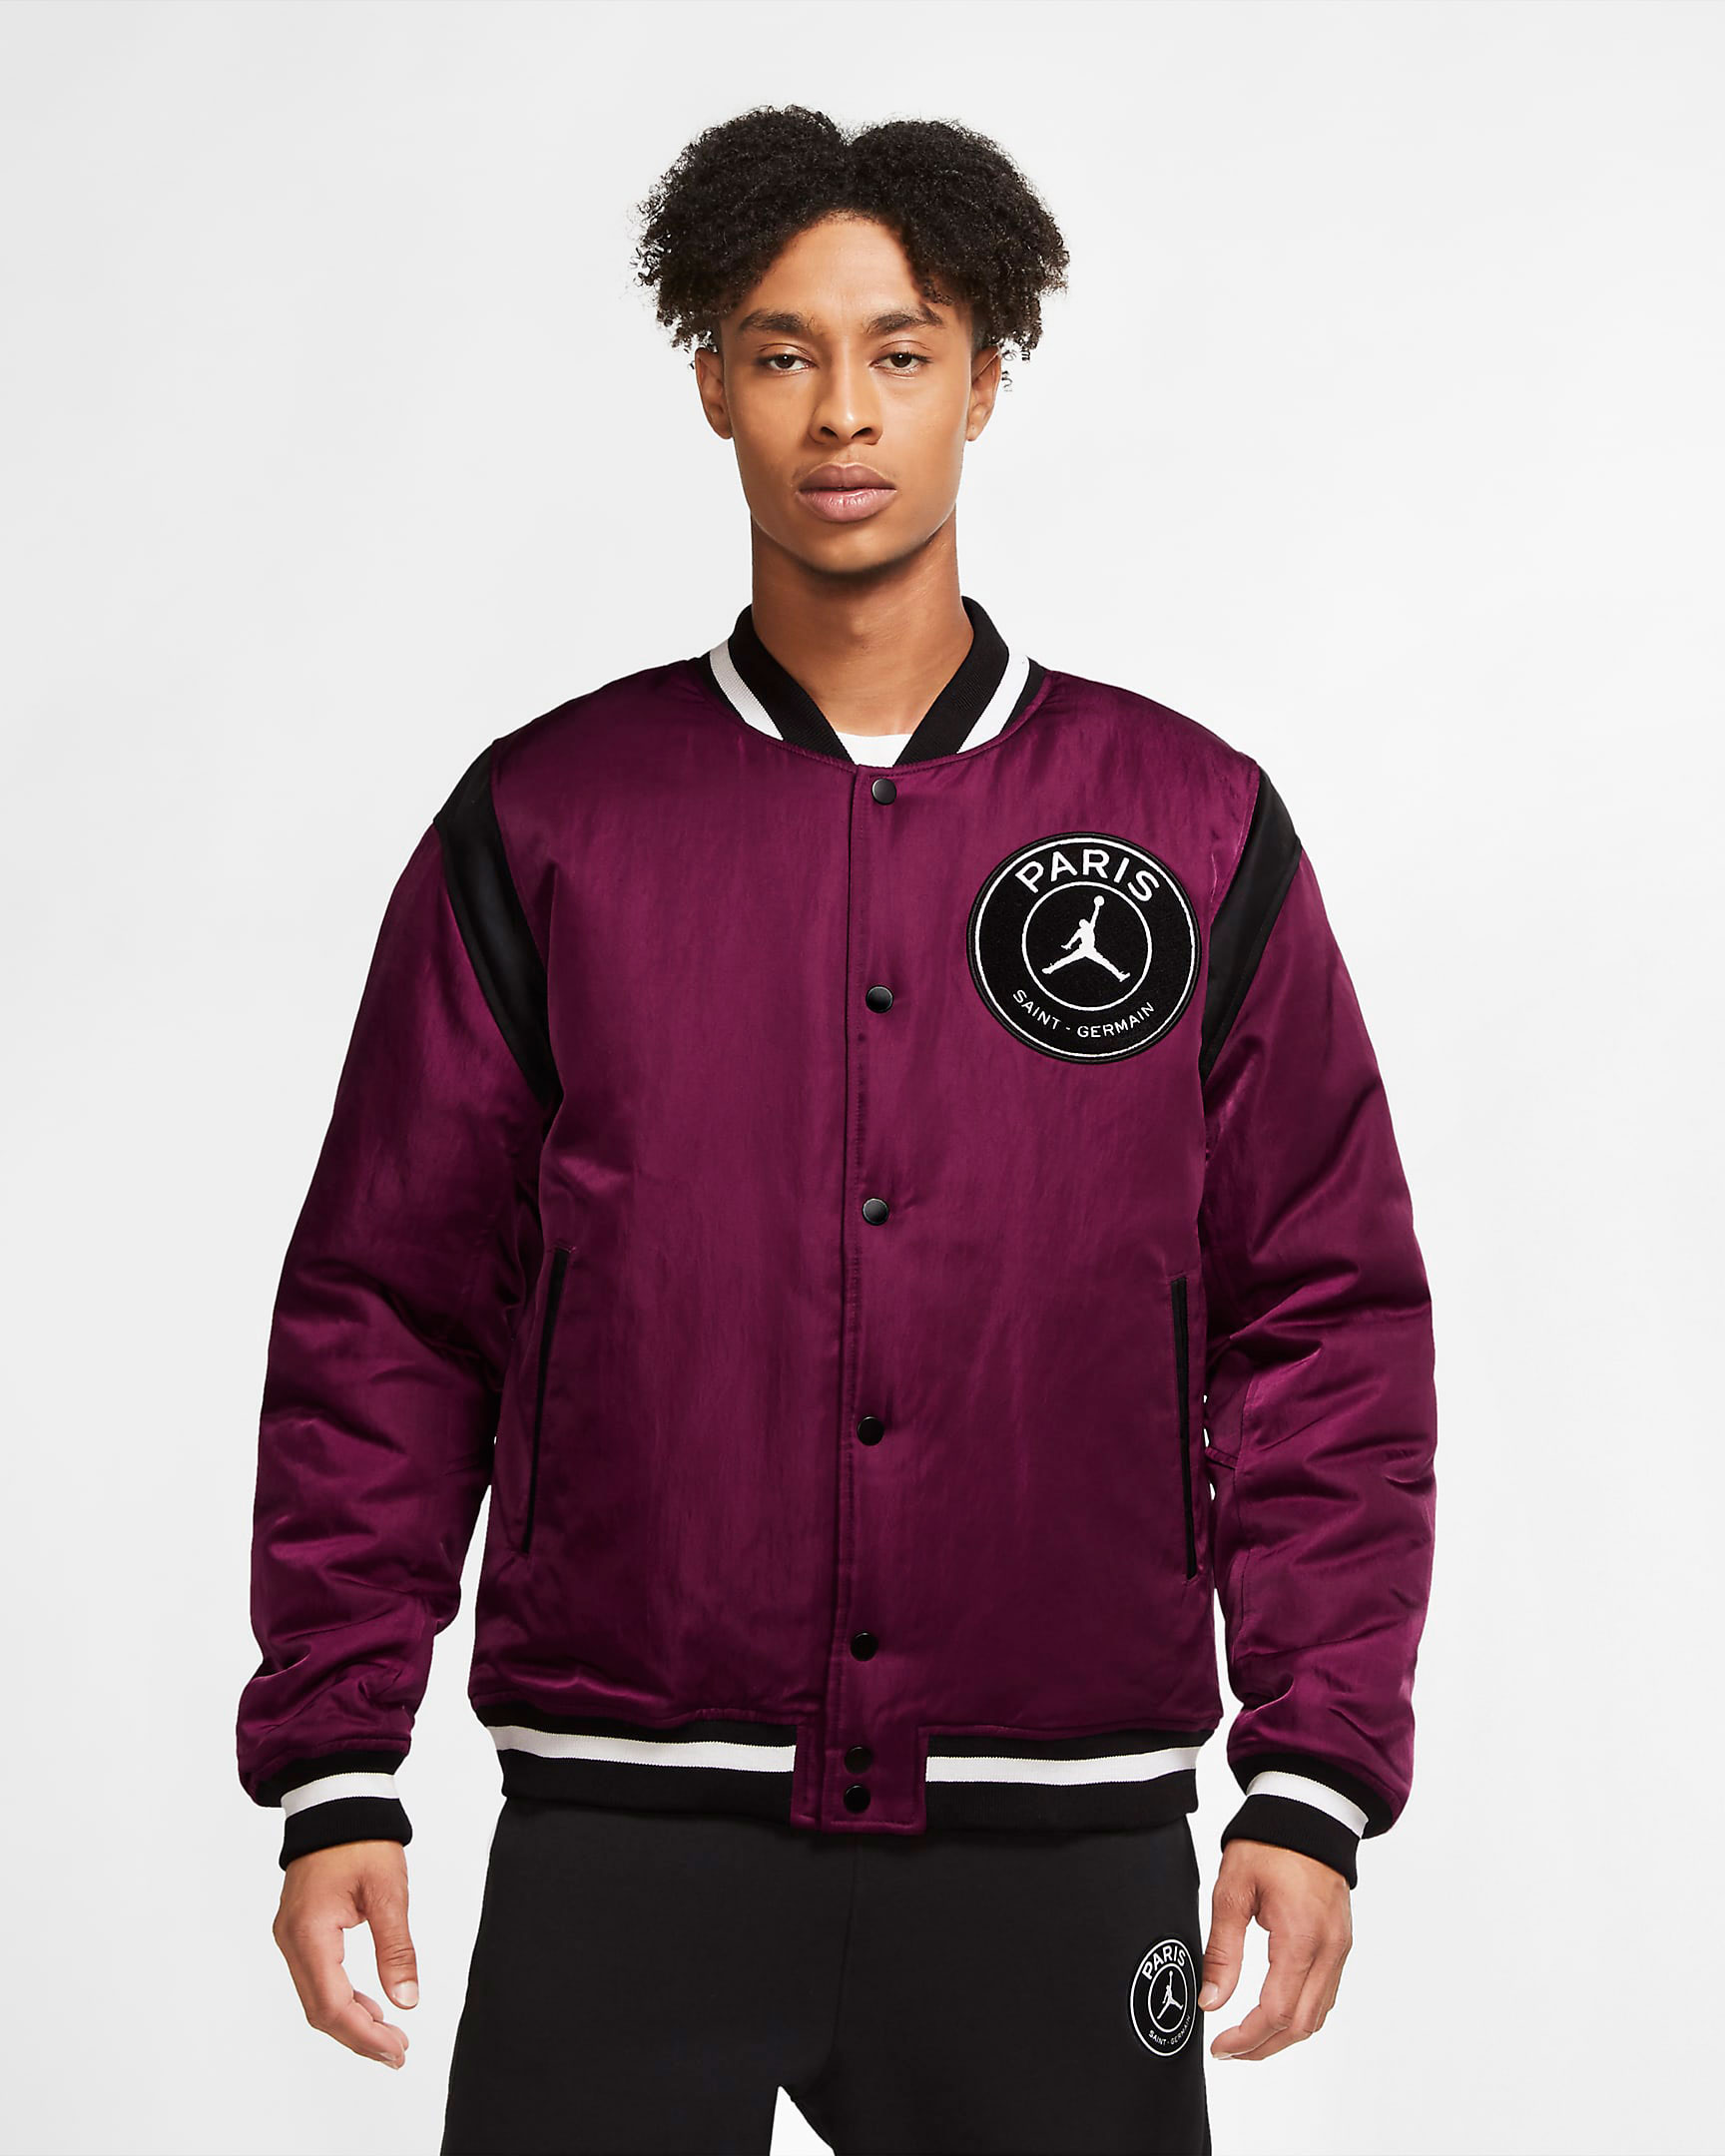 jordan-psg-paris-saint-germain-varsity-jacket-bordeaux-1